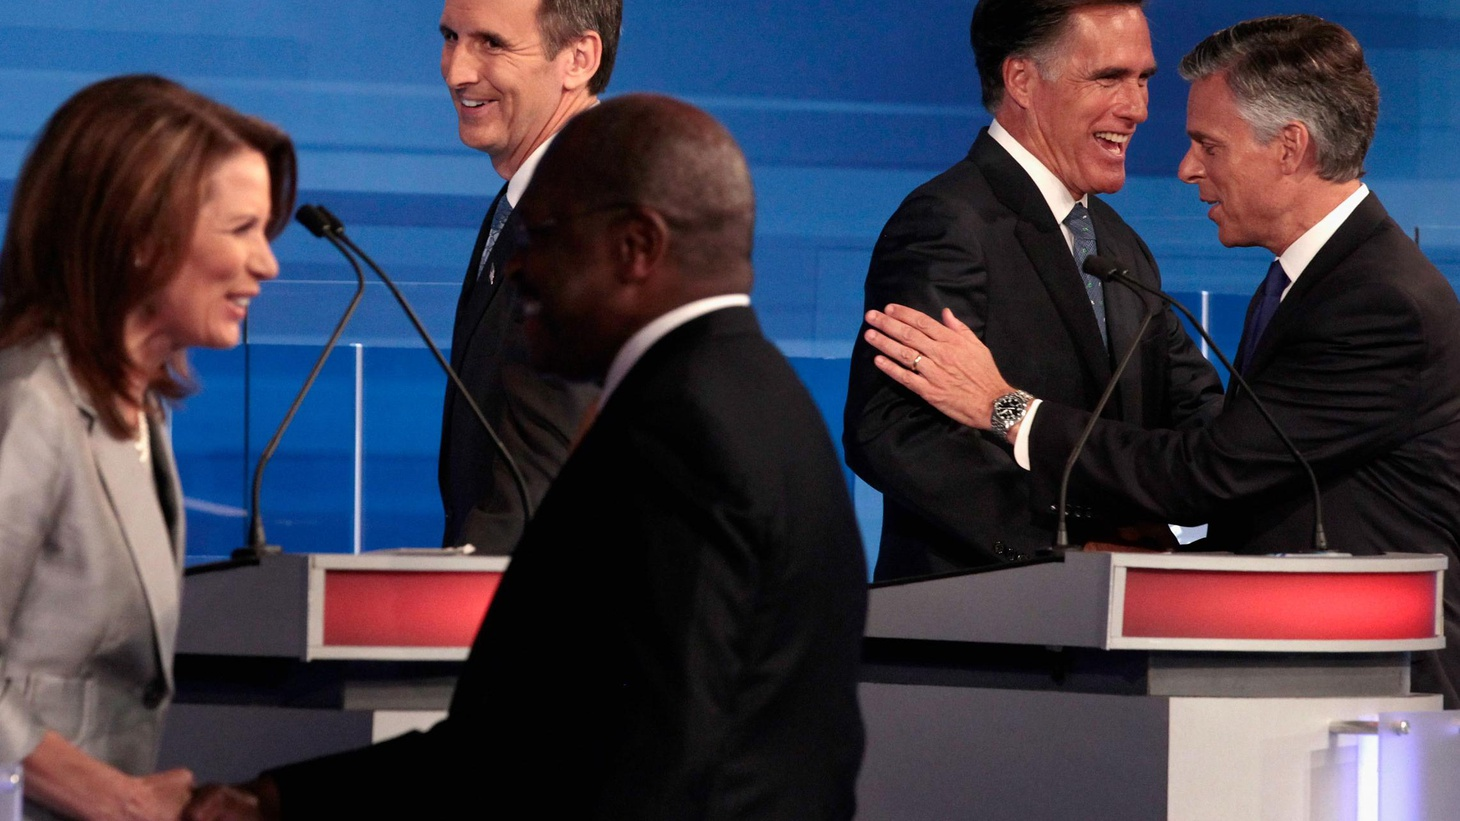 Last night's debate in Iowa produced fireworks between Republican presidential contenders. What did it reveal about a Republican Administration if one of these candidates defeats Barack Obama?